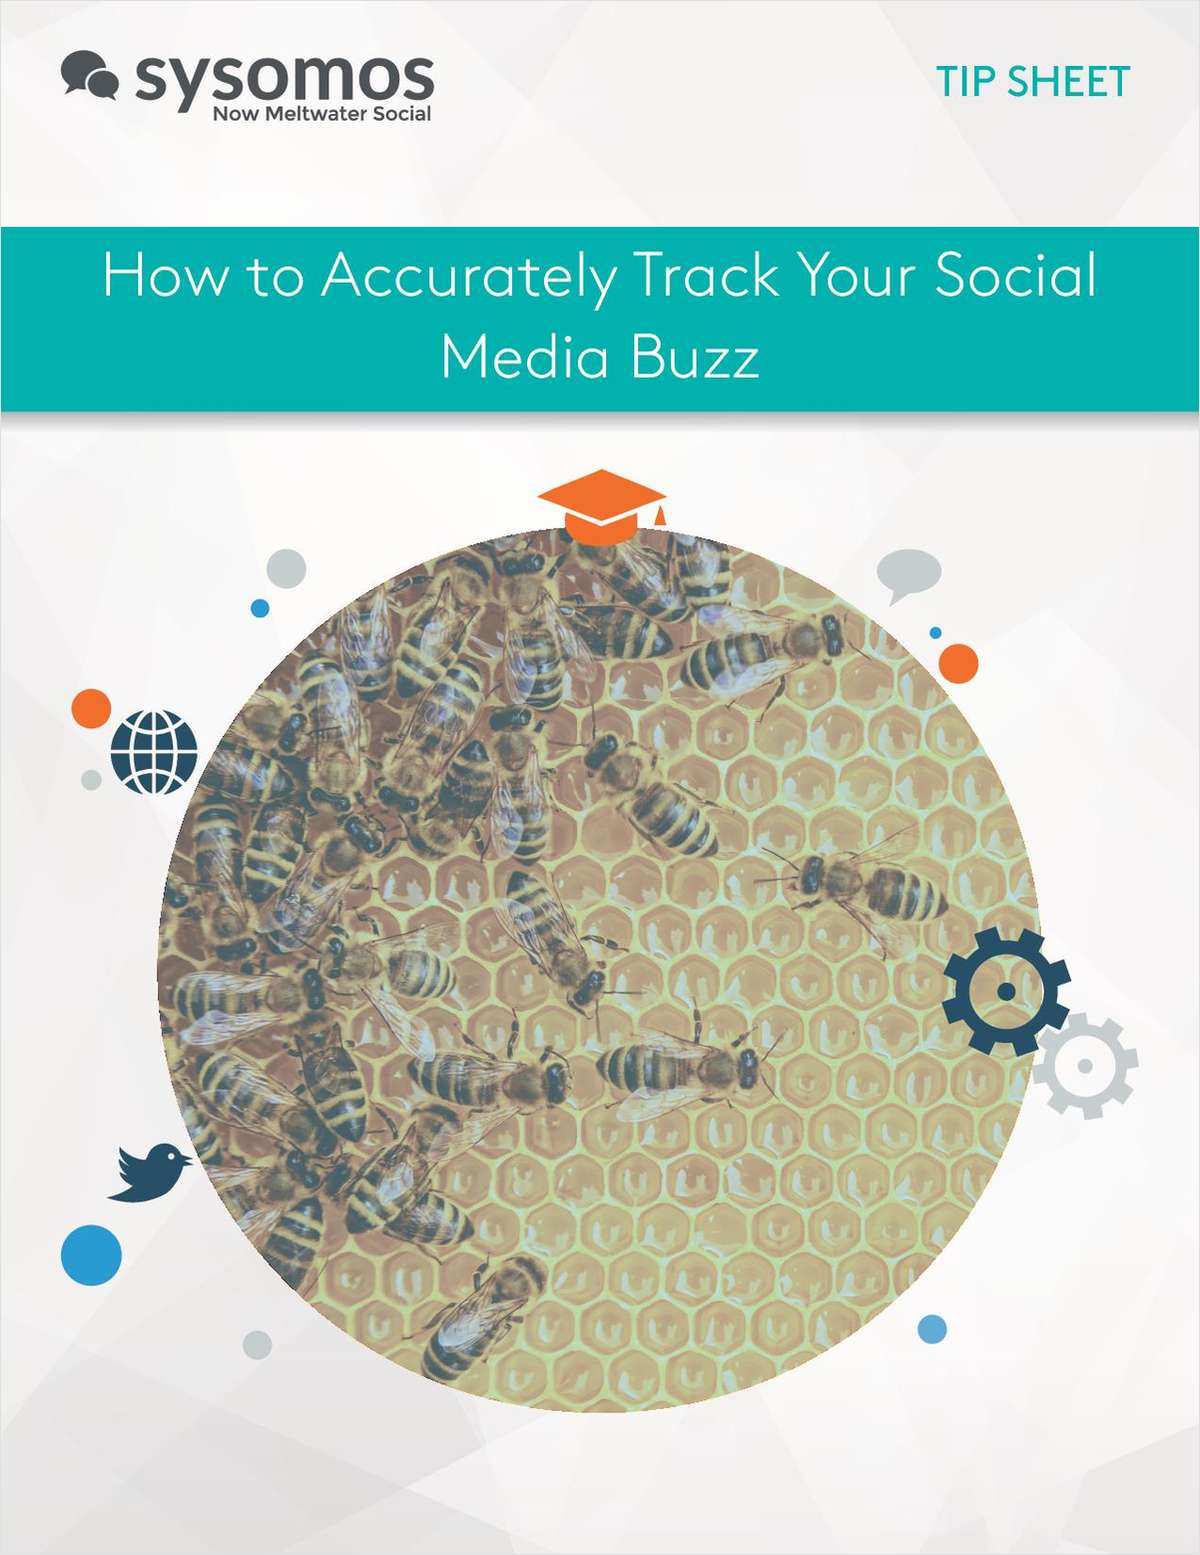 How to Accurately Track Your Social Media Buzz